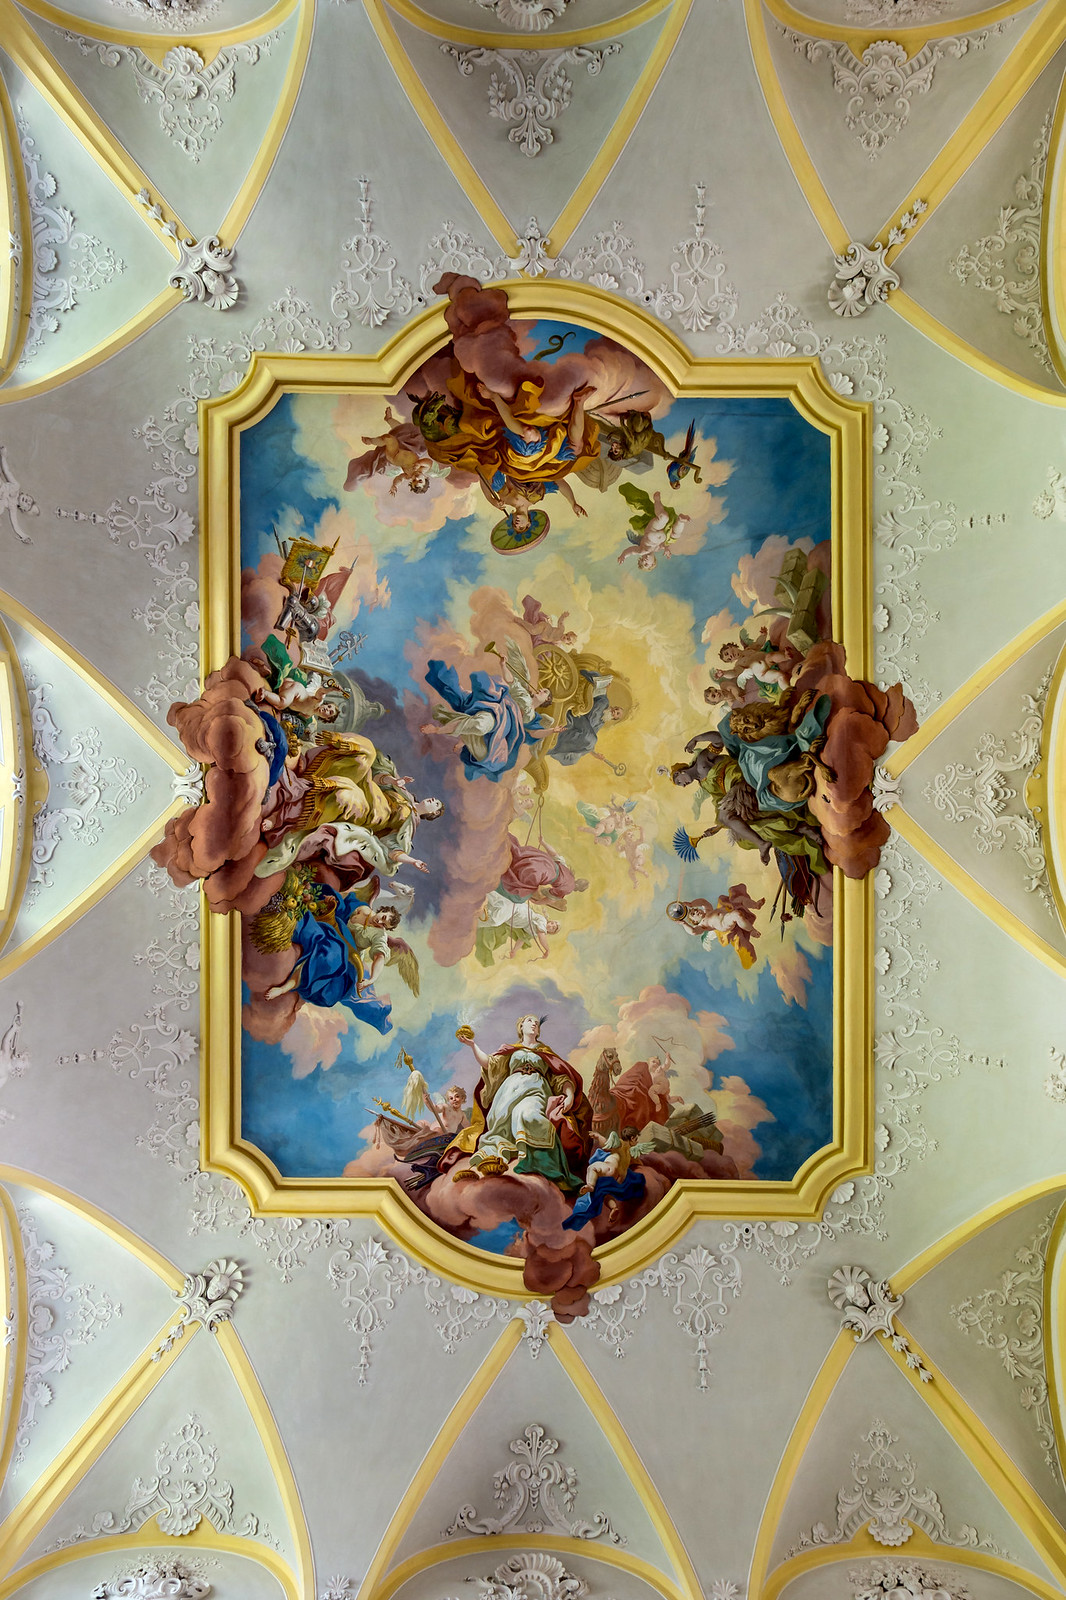 Ceiling fresco of the Abbey's Staircase at Seitenstetten Abbey (Lower Austria) by Bartolomeo Altomonte (1744) Triumph of St. Benedict. Credit Uoaei1